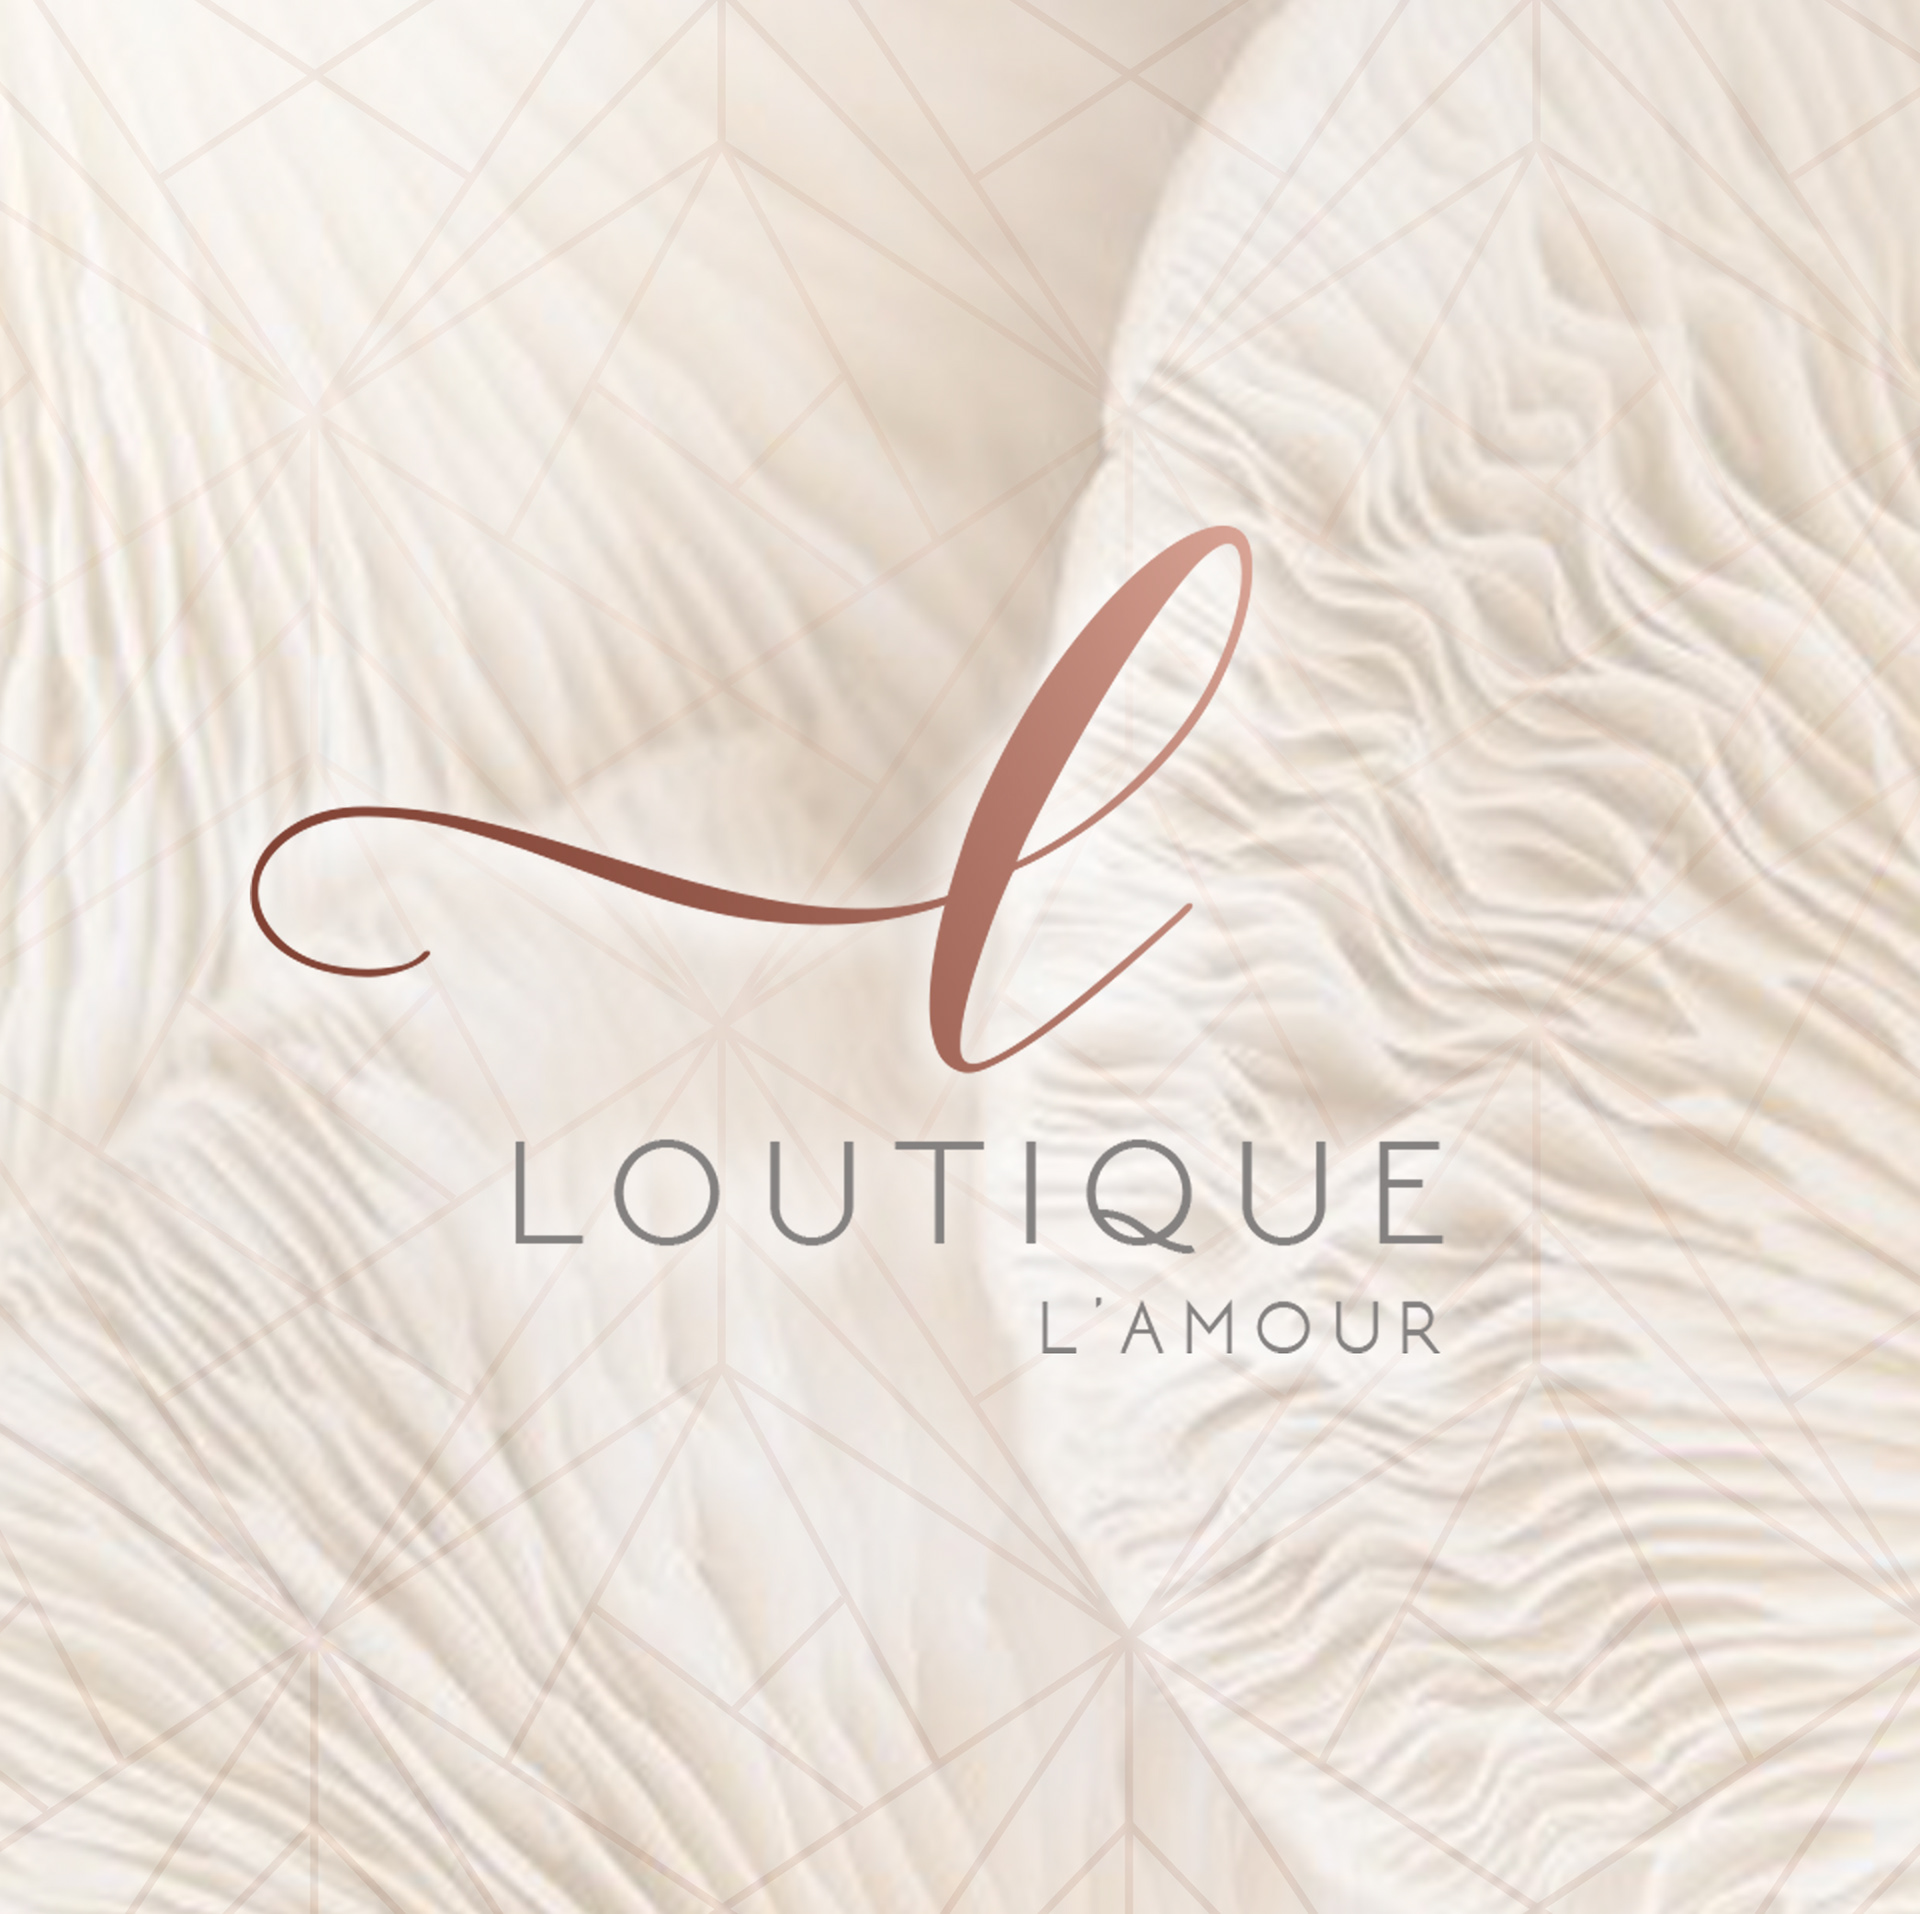 Logo loutique